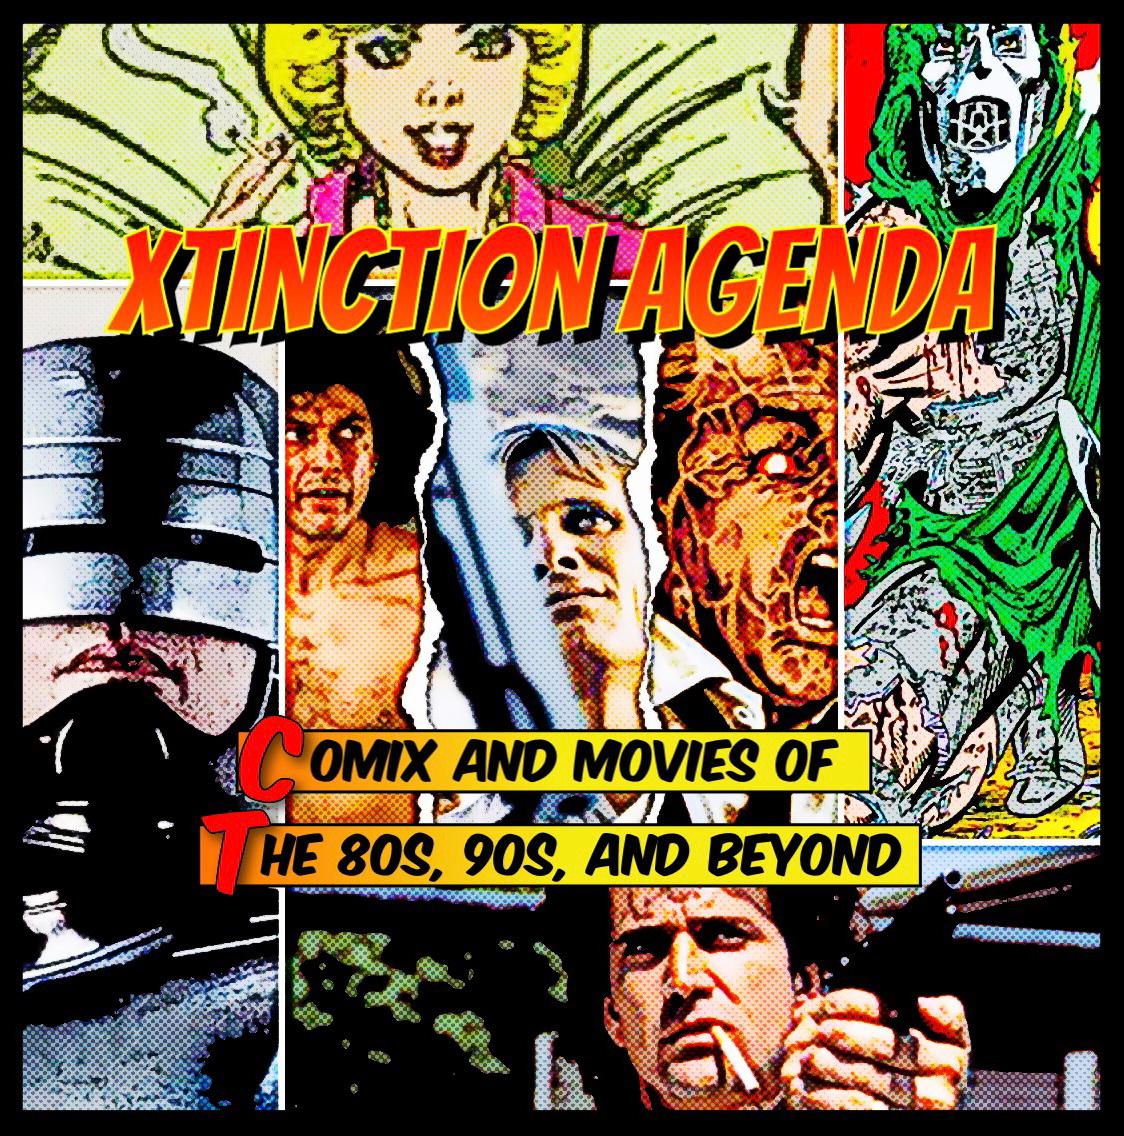 Xtinction Agenda: Comics and Movies of 80s, 90s, and Beyond